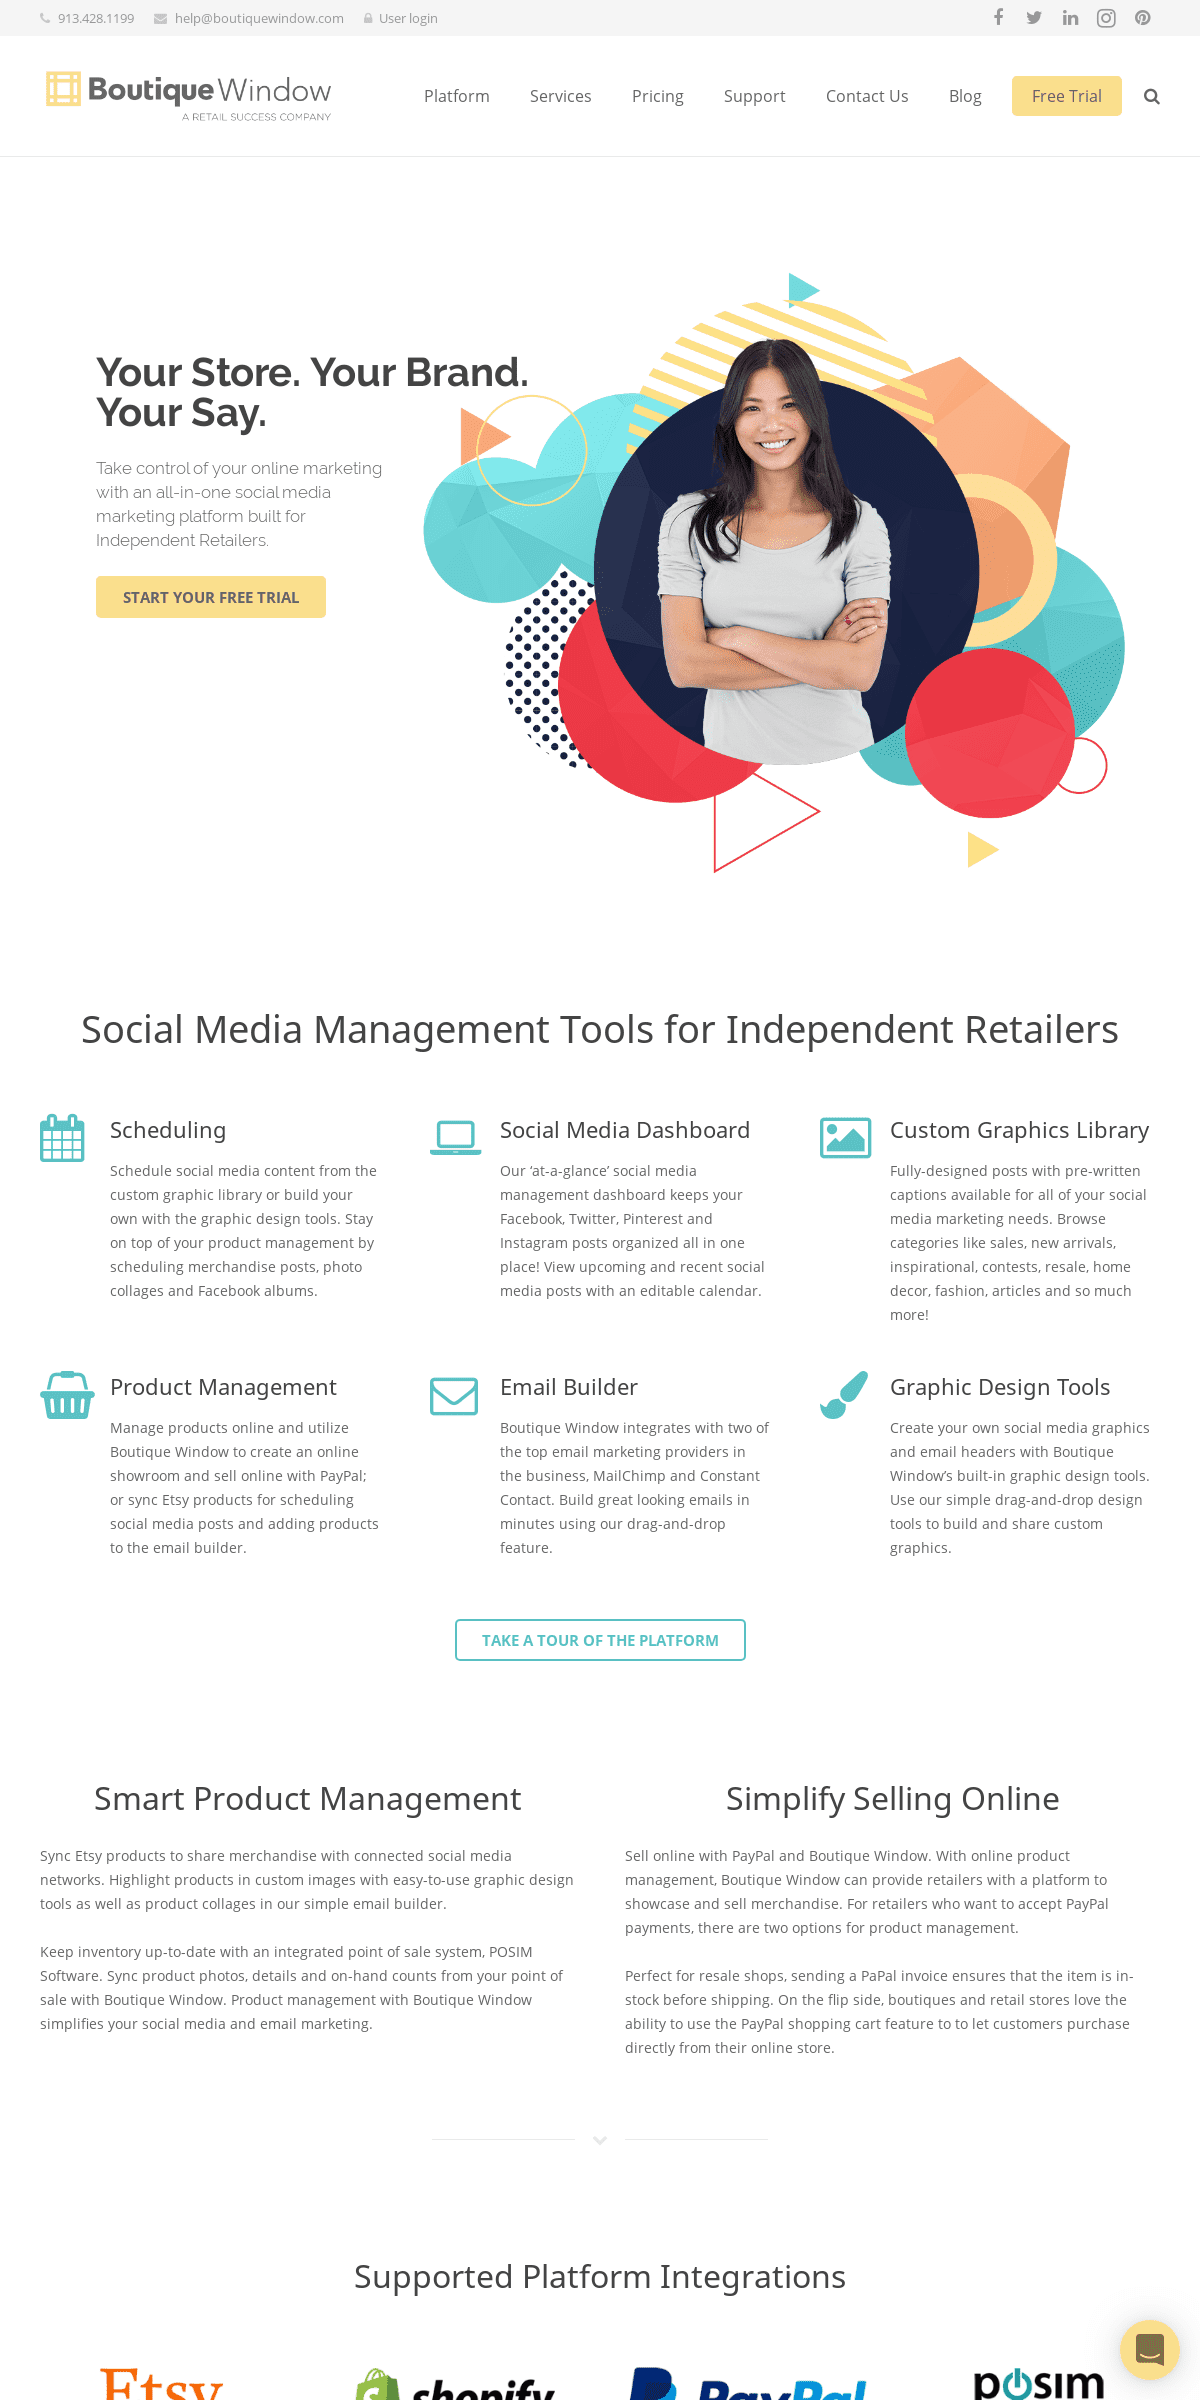 Social Media Management Tools for Independent Retailers